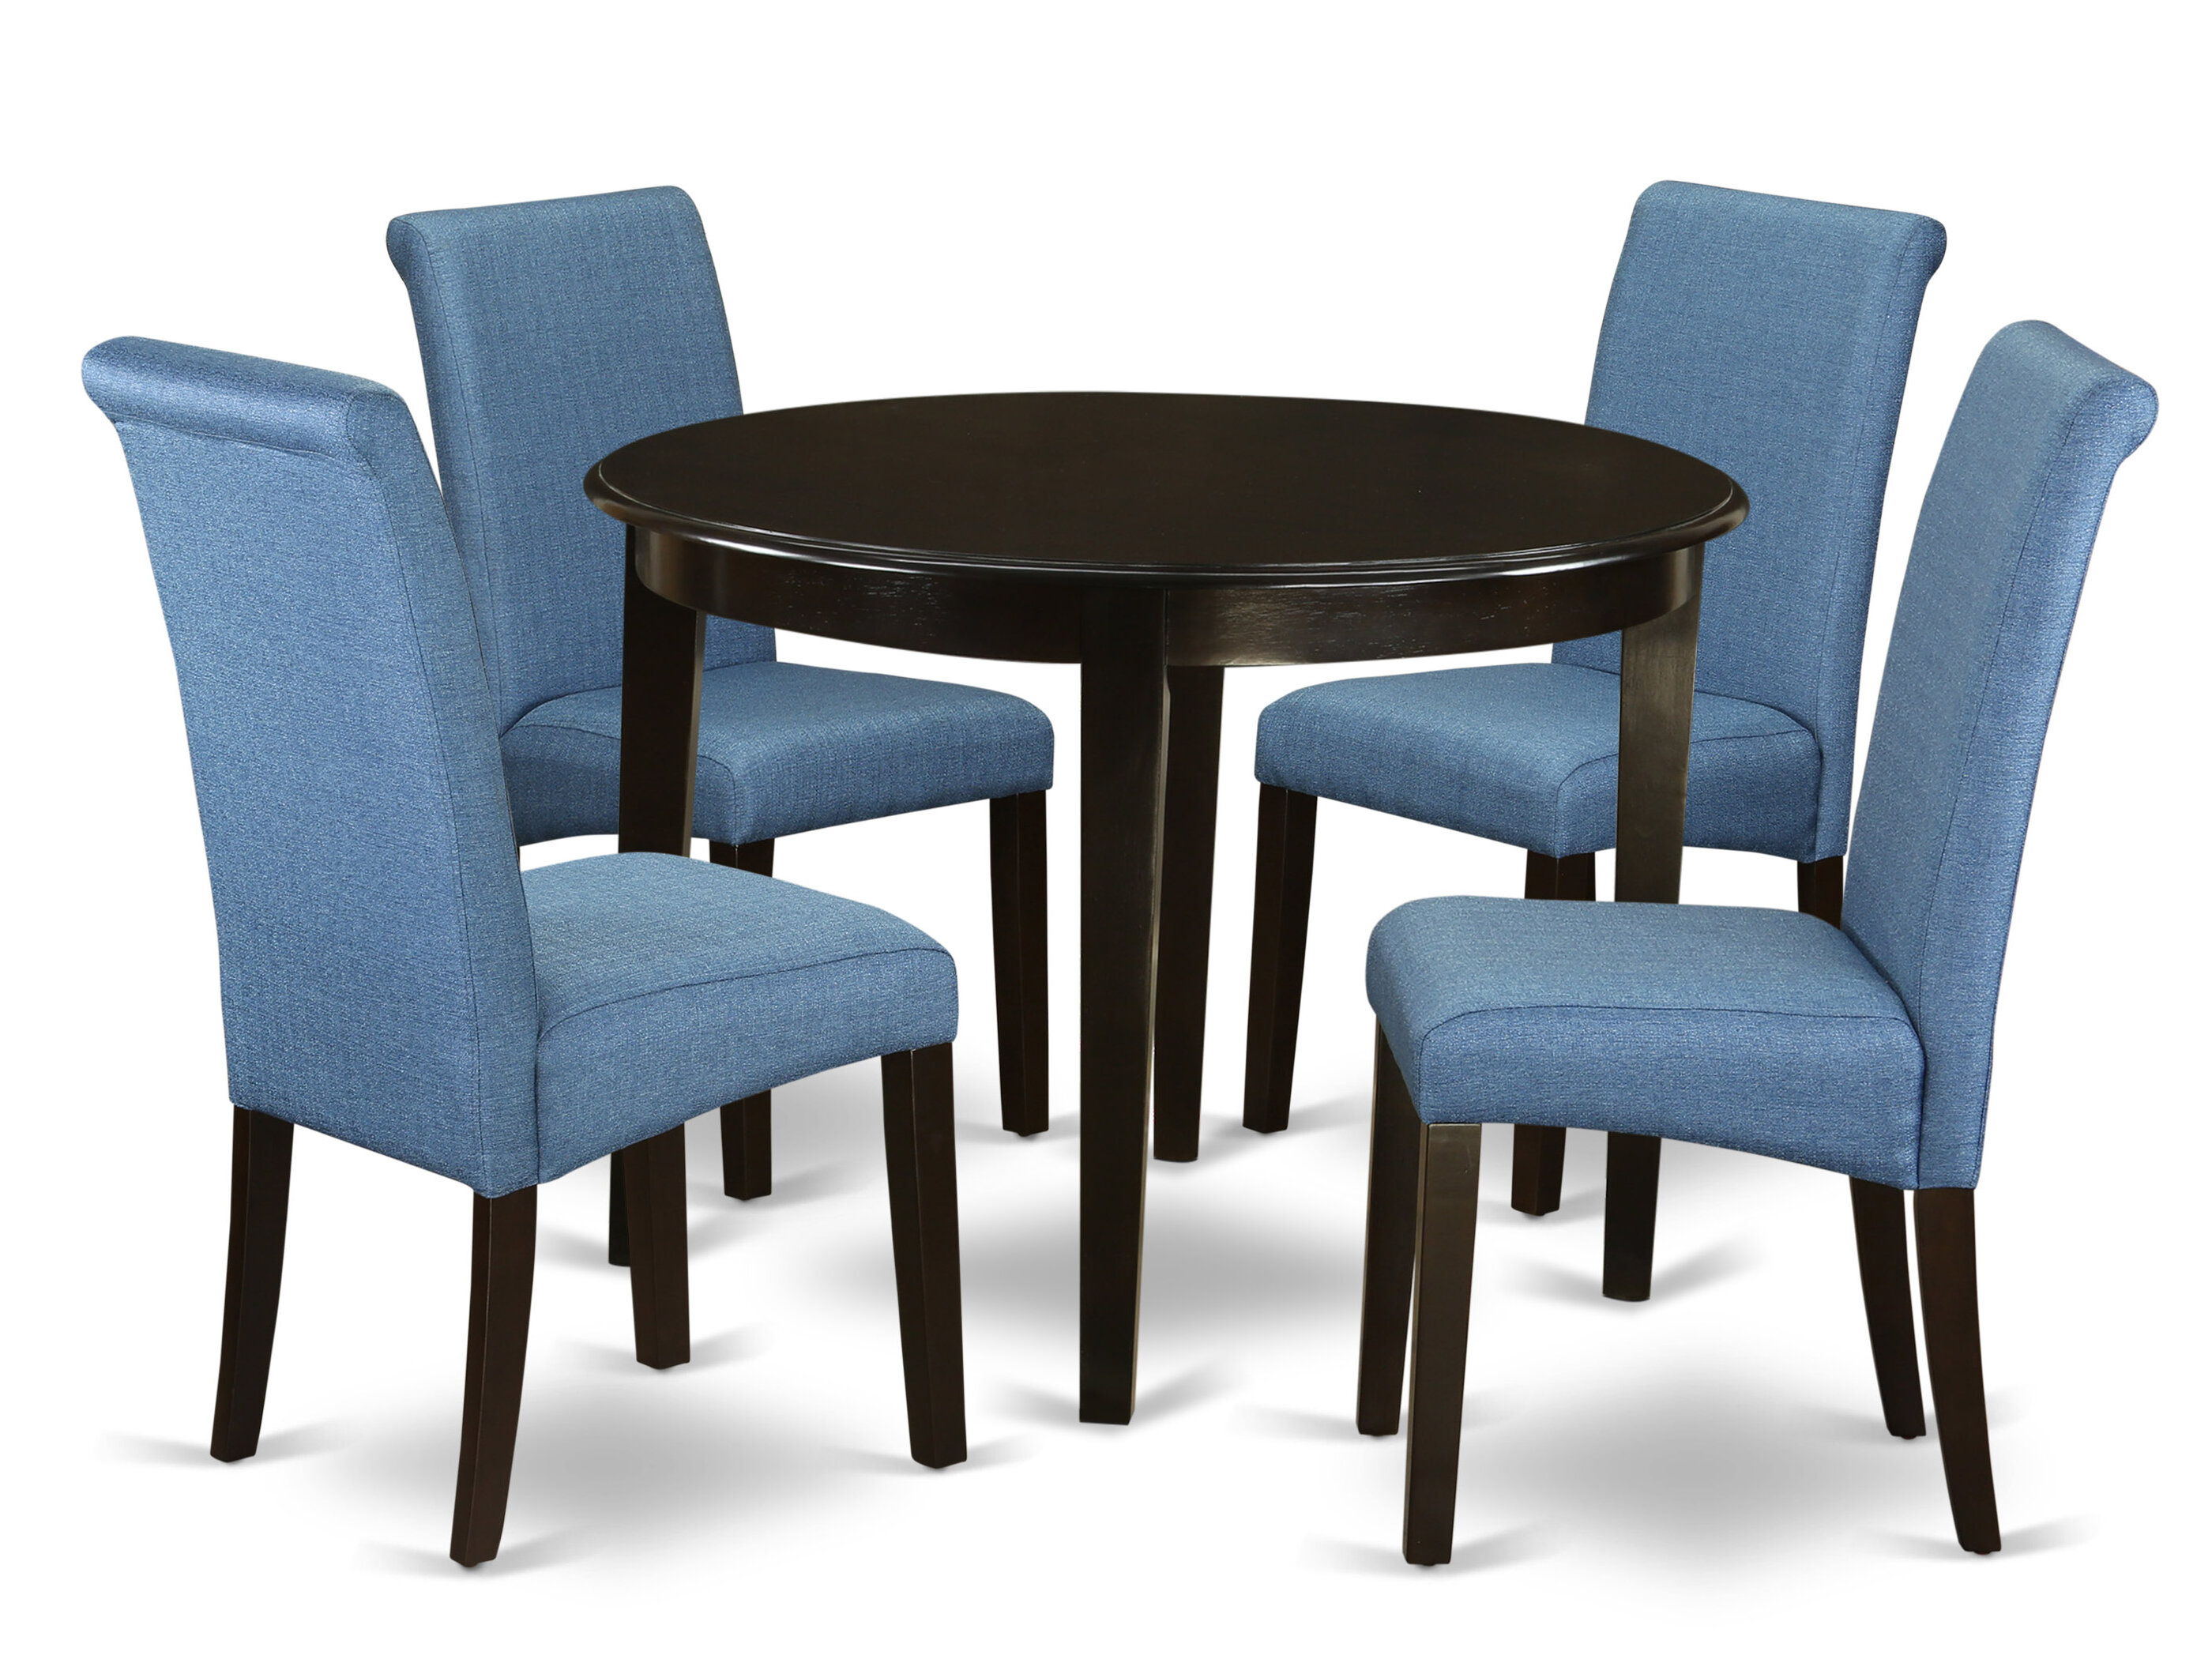 Amya Small Kitchen Table 5 Piece Solid Wood Breakfast Nook Dining Set